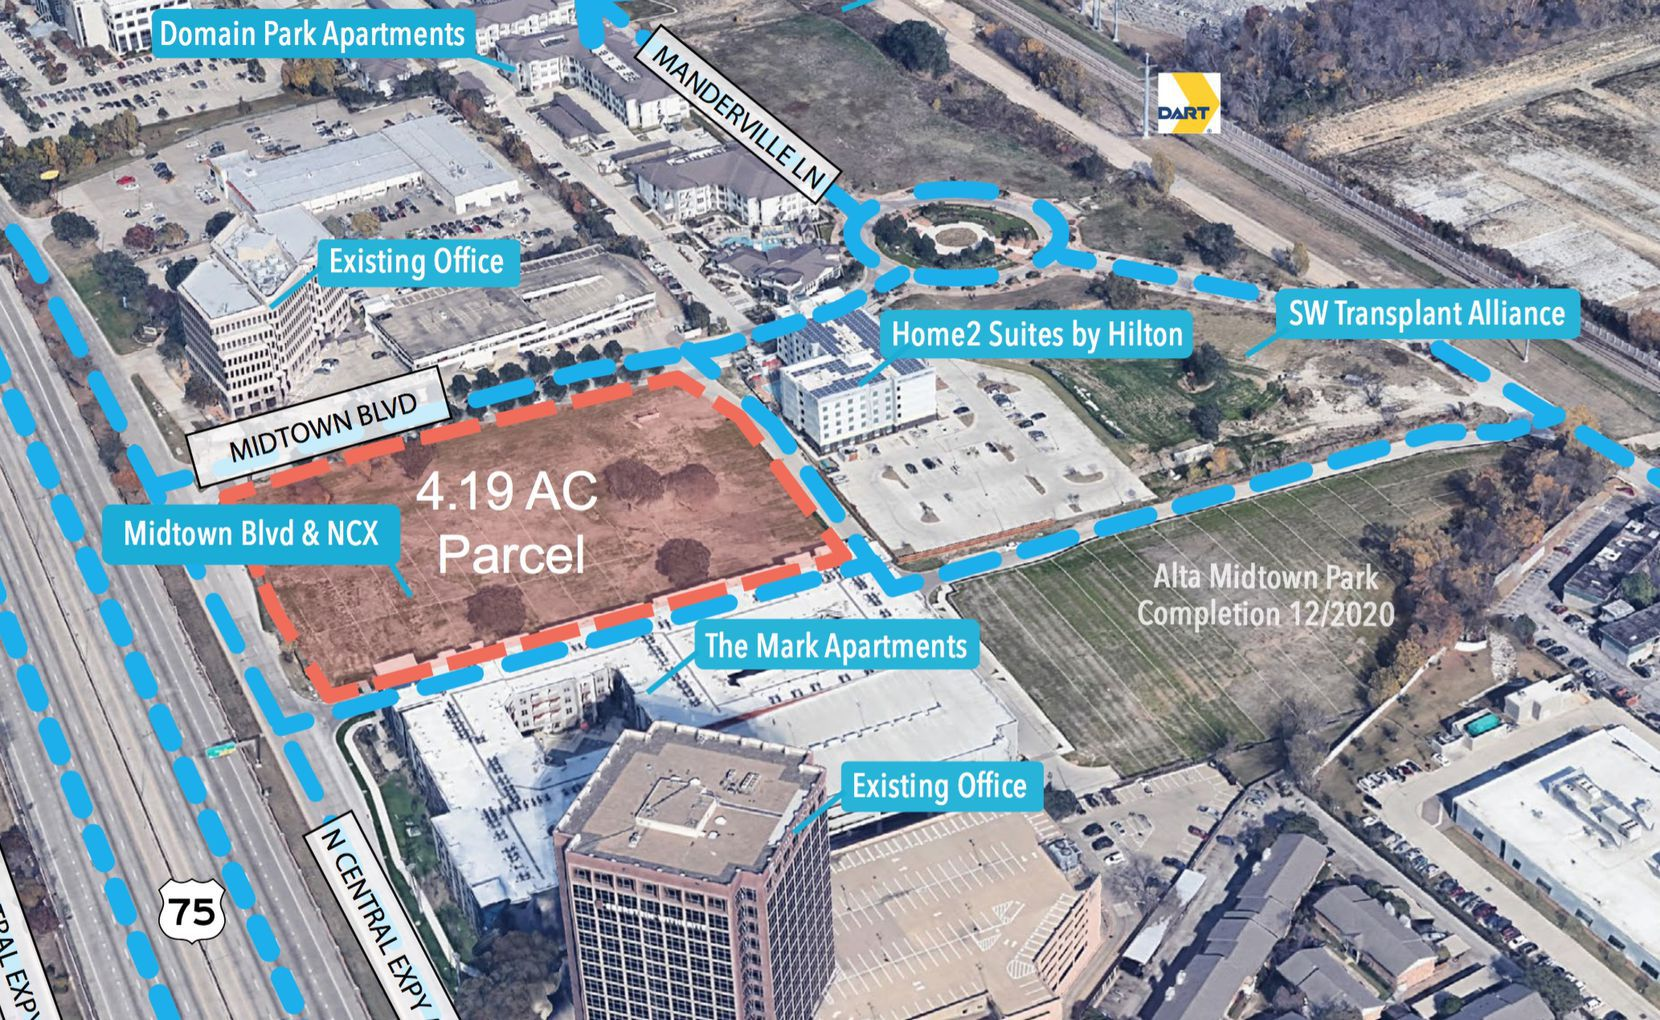 The more than 4-acre building site is just north of Meadow Road.